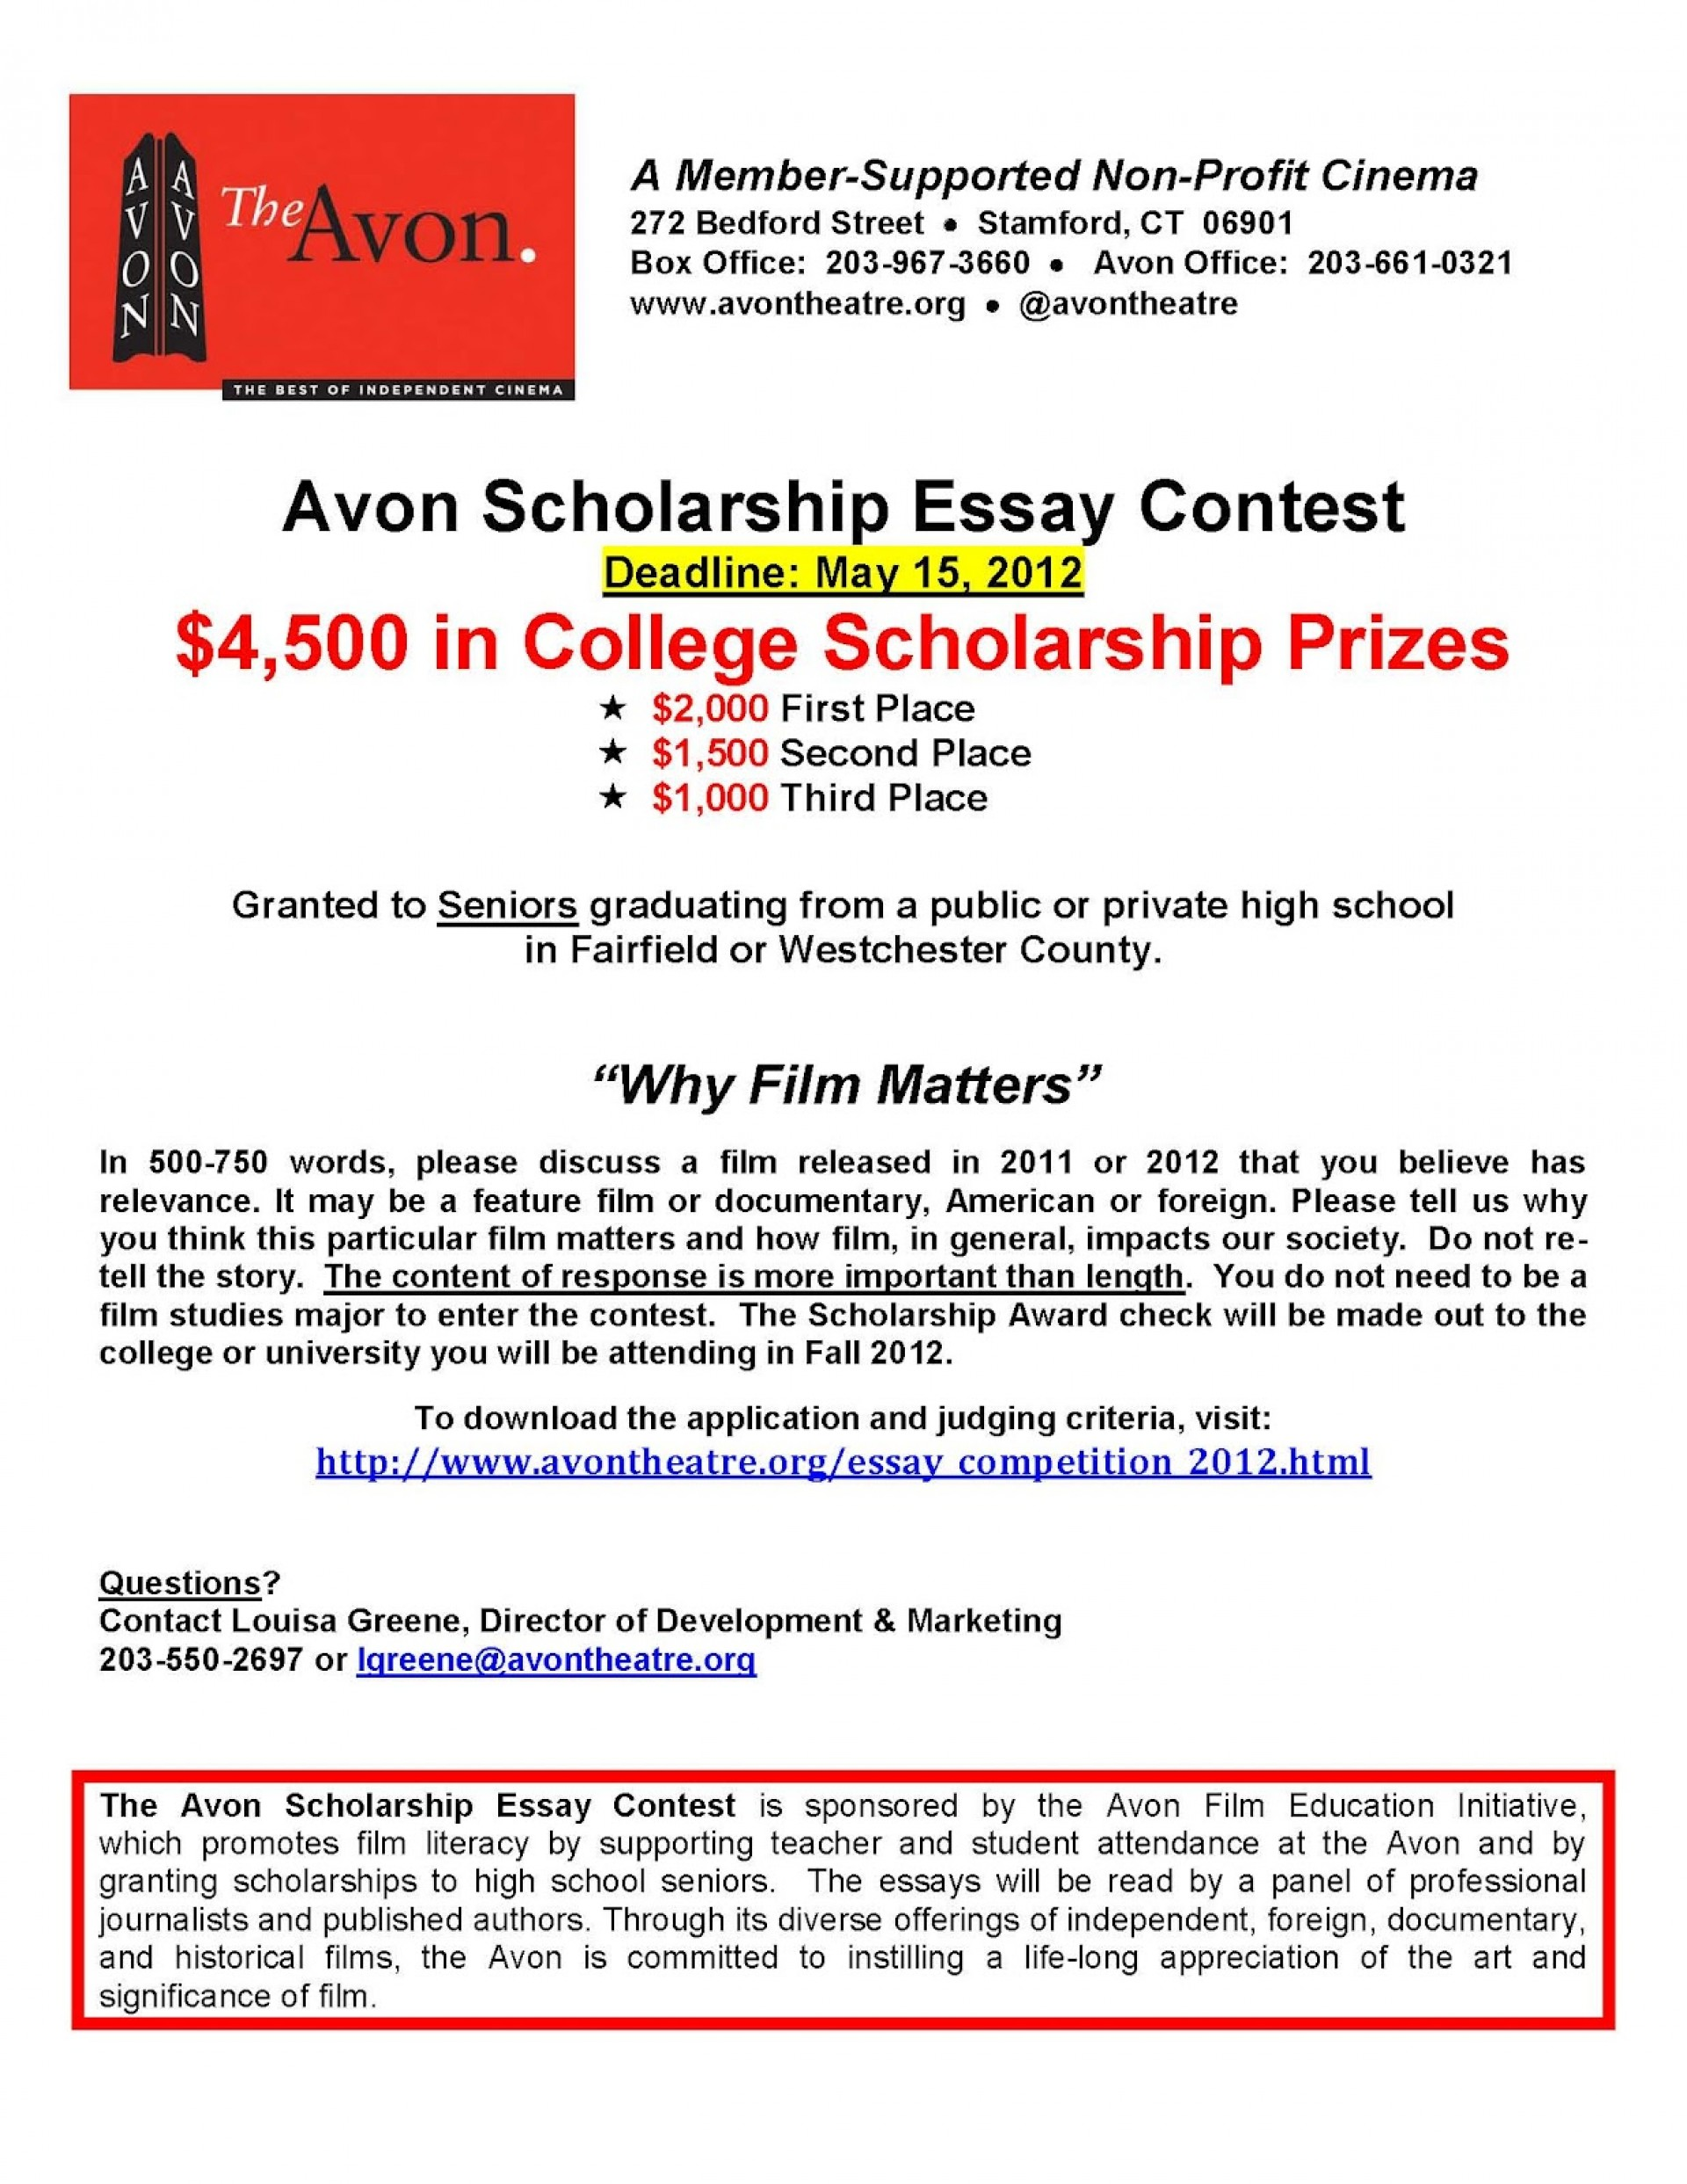 016 Avonscholarshipessaycontest2012flyer Essay Example Shocking Scholarships 2018 Canada 2019 No For High School Juniors 1920